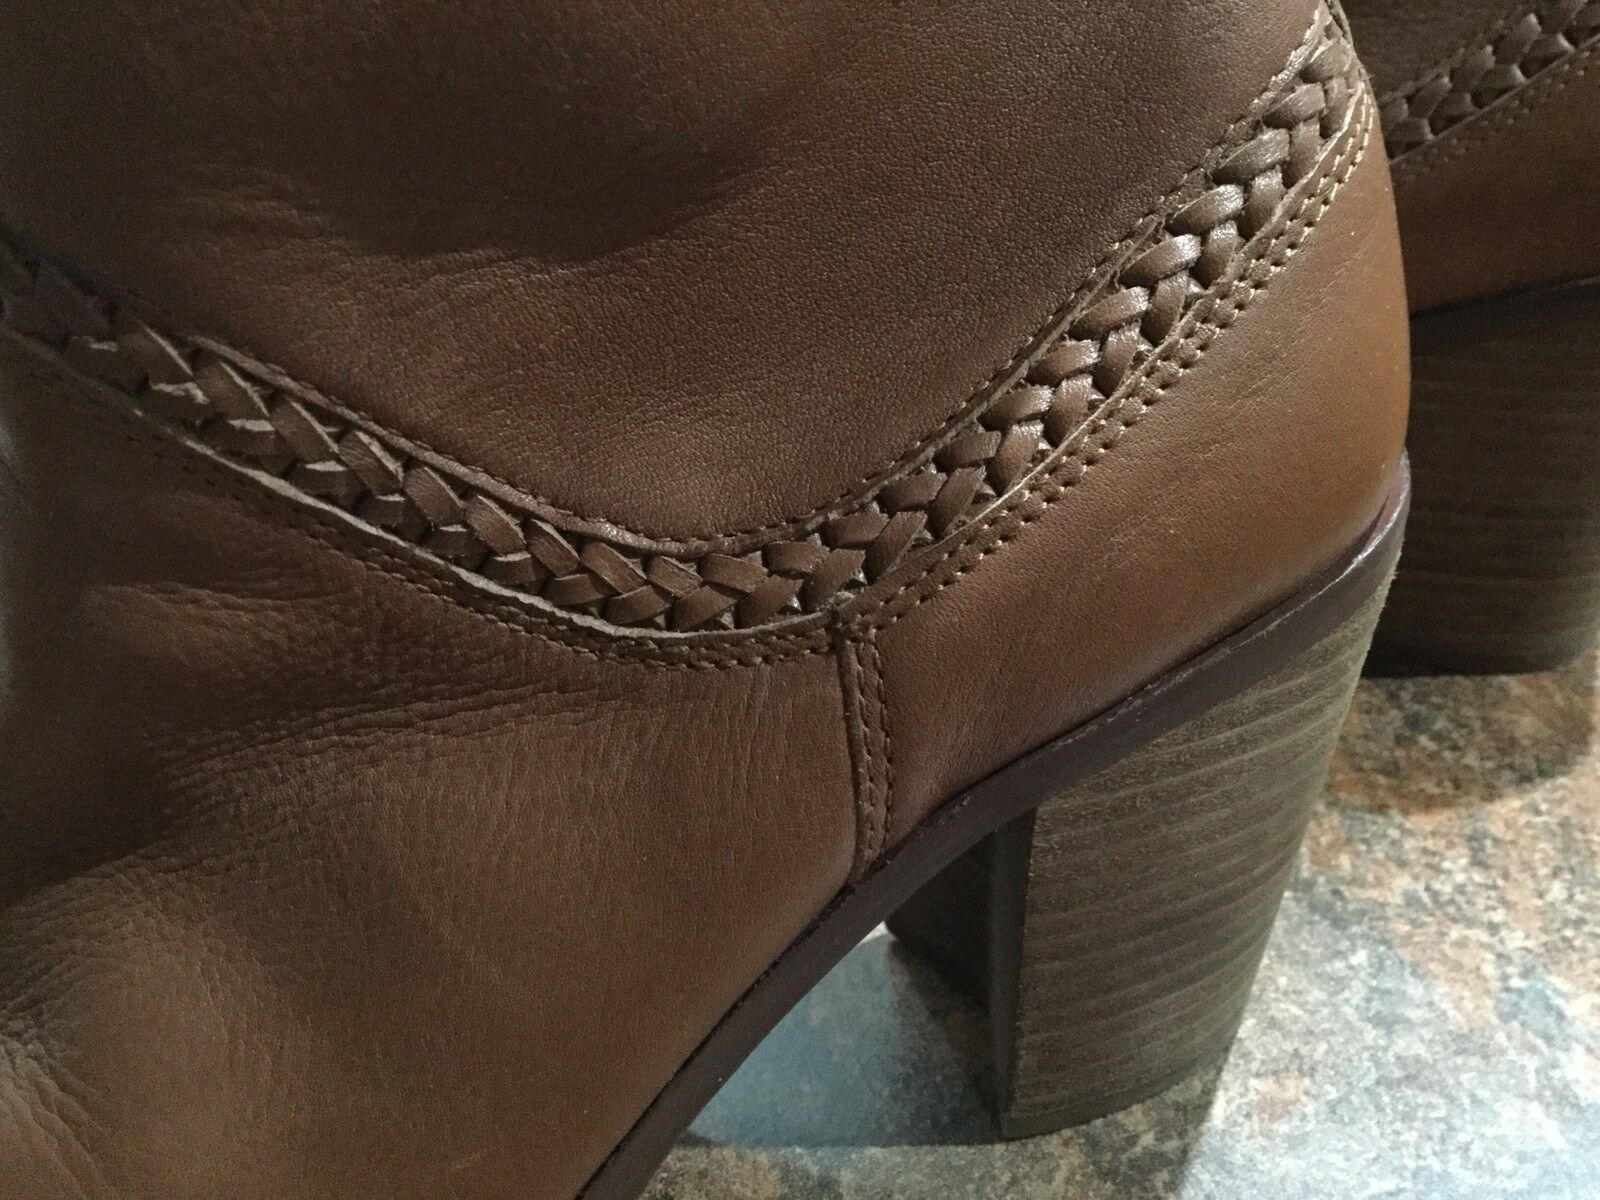 FABULOUS BROWN ANKLE BOOTS ALDOBRAIDED LEATHER SIZE 9 E